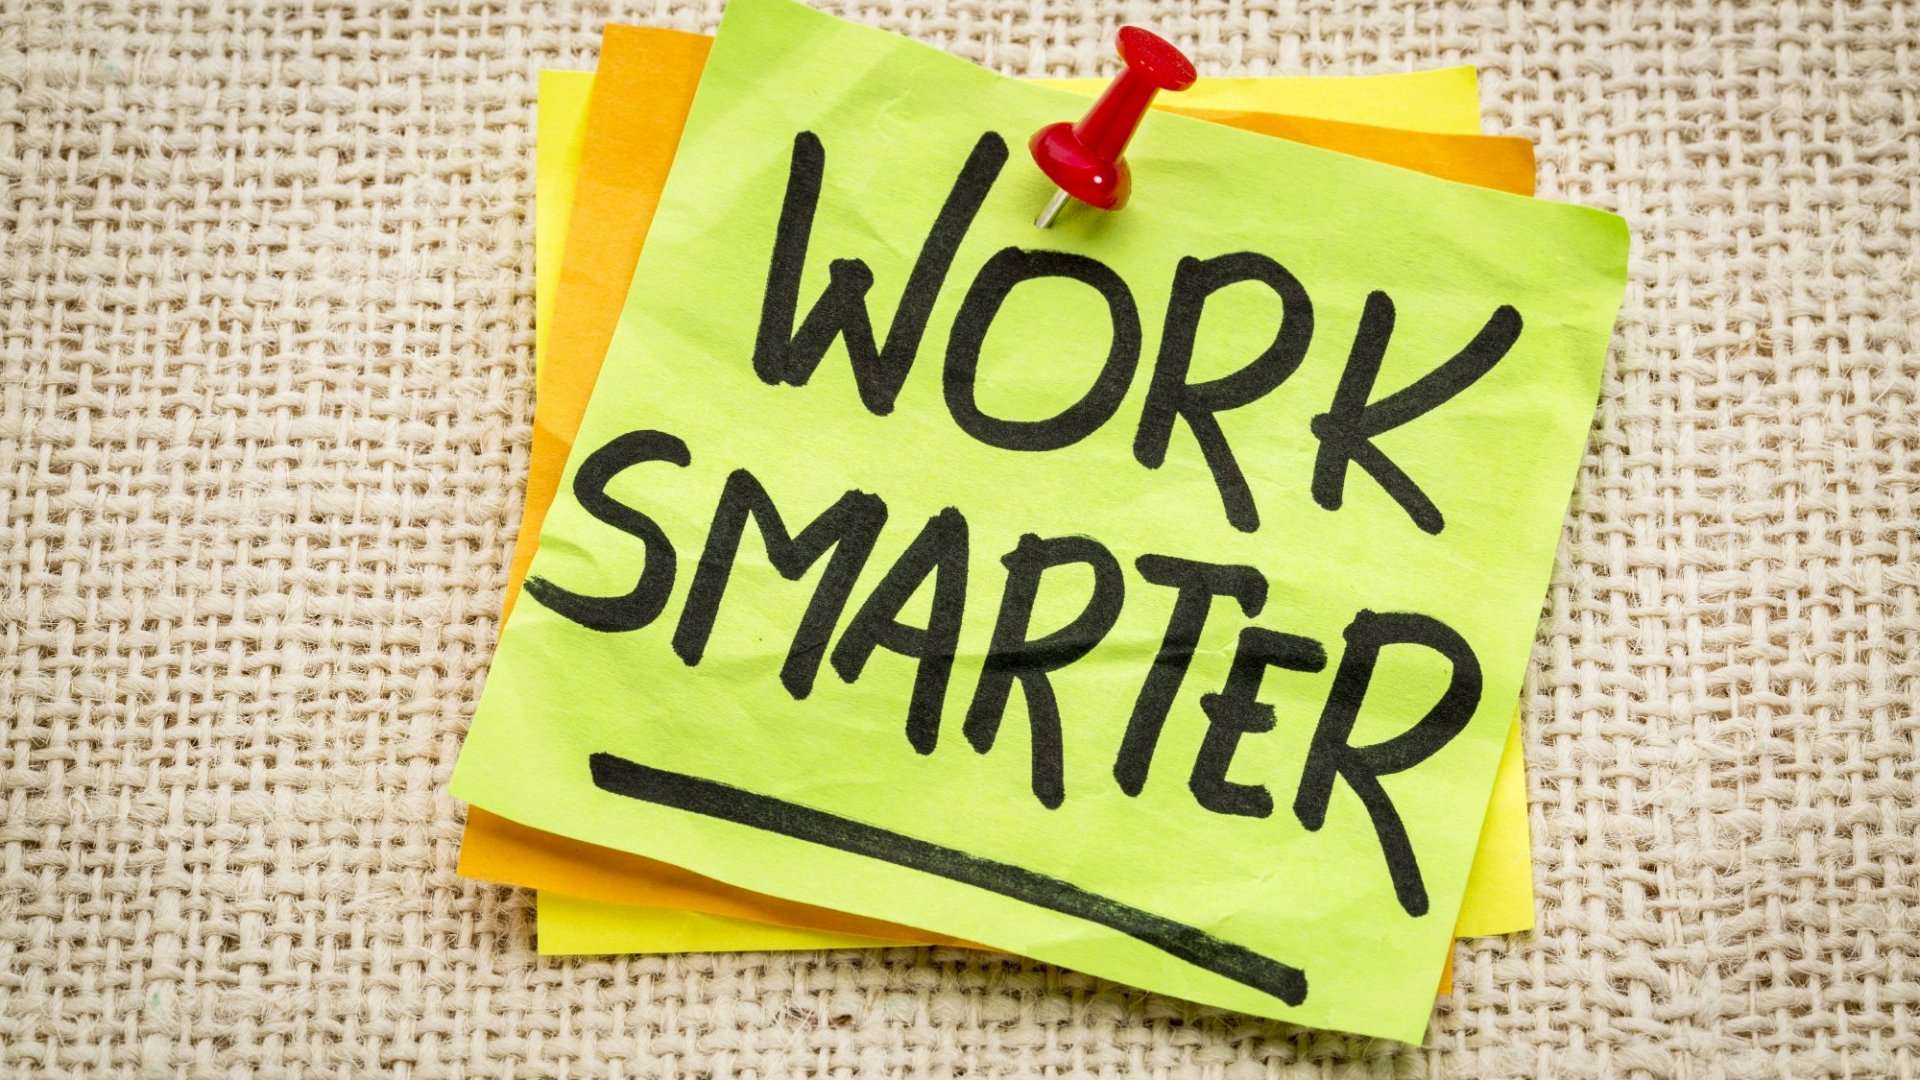 How to Work Smarter, Not Harder on Your Business